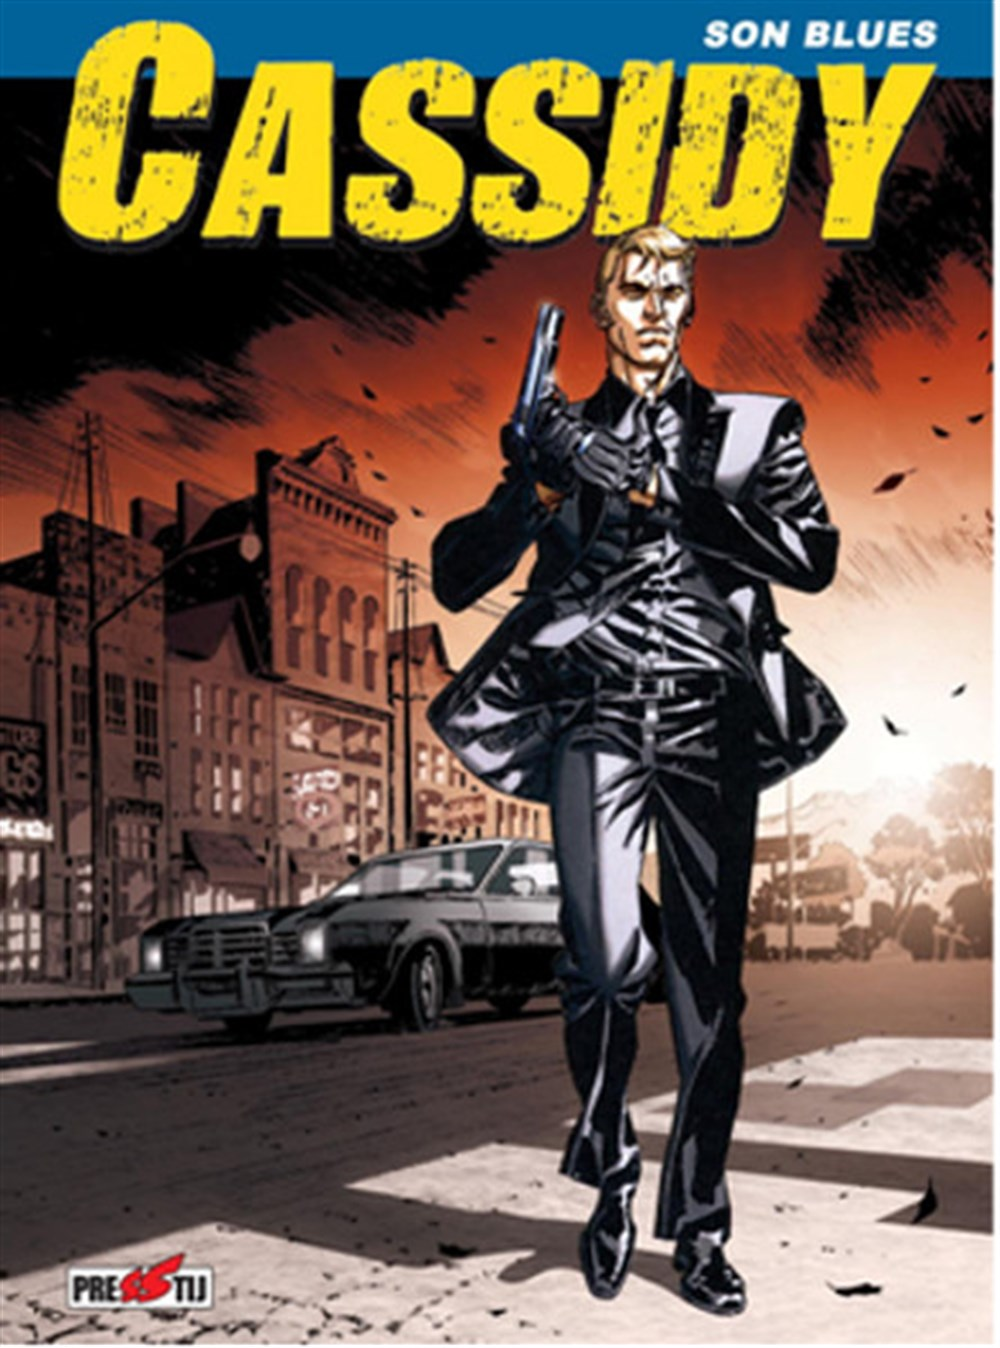 Cassidy Cit 1 - Son Blues